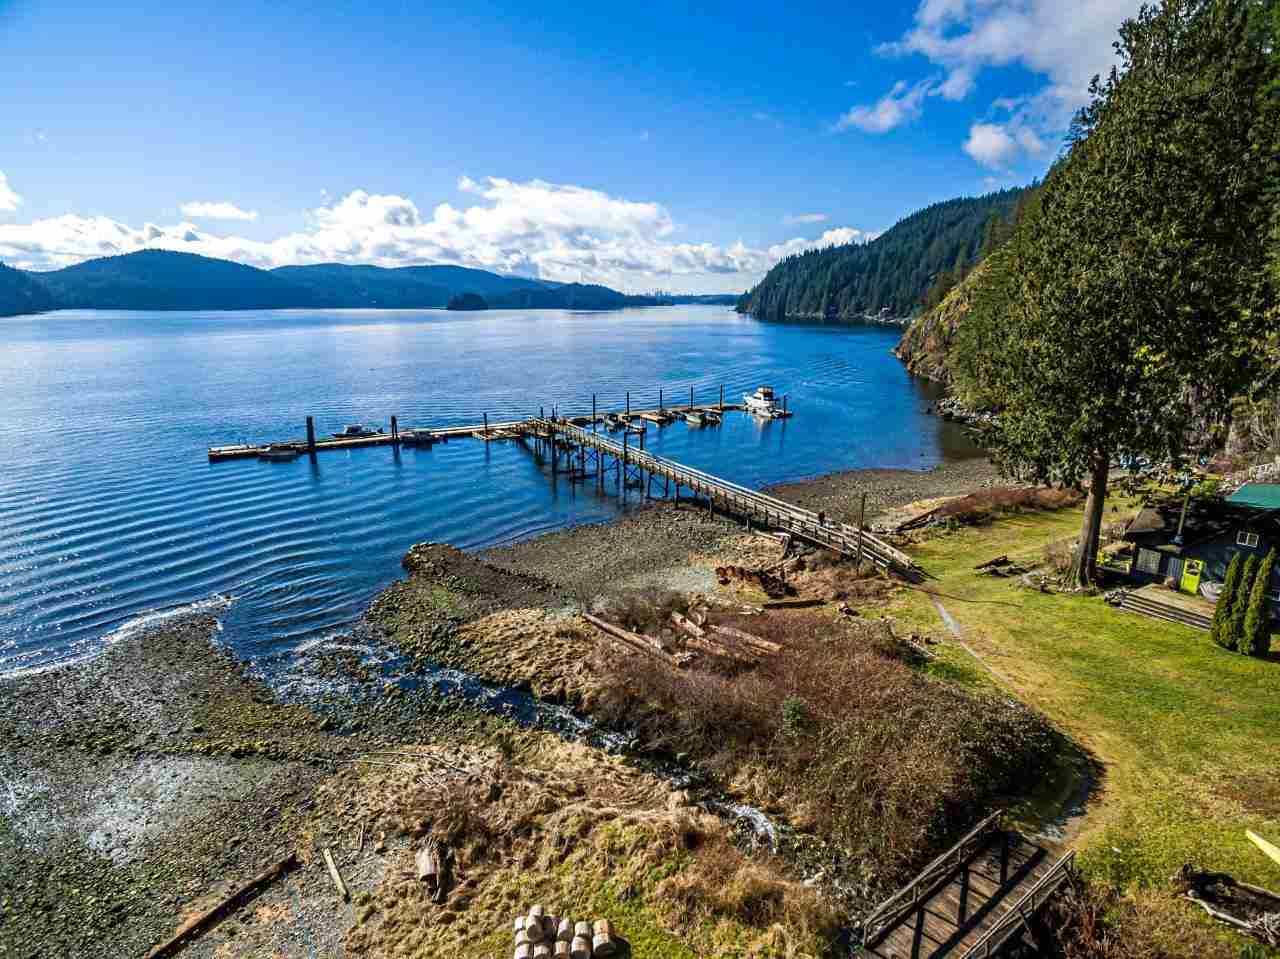 Why buy a one bedroom condo when you can own a gorgeous log home on a 30 acre parcel of peaceful waterfront land- only 10 min to North Vancouver by boat! Be new proud land owners in the wonderful seaside community of Brighton Beach, Indian Arm. Large 3 level-3 bed family home is perfect for those wanting a more remote and independent lifestyle with quick boat access to Deep Cove and easily commutable to the city. Plenty of space here with large main living room, 3 beds, 2 full baths and a massive games room downstairs with wet bar! A wonderful new chapter awaits for those seeking new adventures in the heart of nature. Wake up to life surrounded by lush forests, waterfalls, and fresh crab and prawns right outside your front door. Outdoor pursuits are endless here with hiking trails galore behind this fabulous ocean view property. Escape the daily grind and live out your dreams in this idyllic waterfront community.